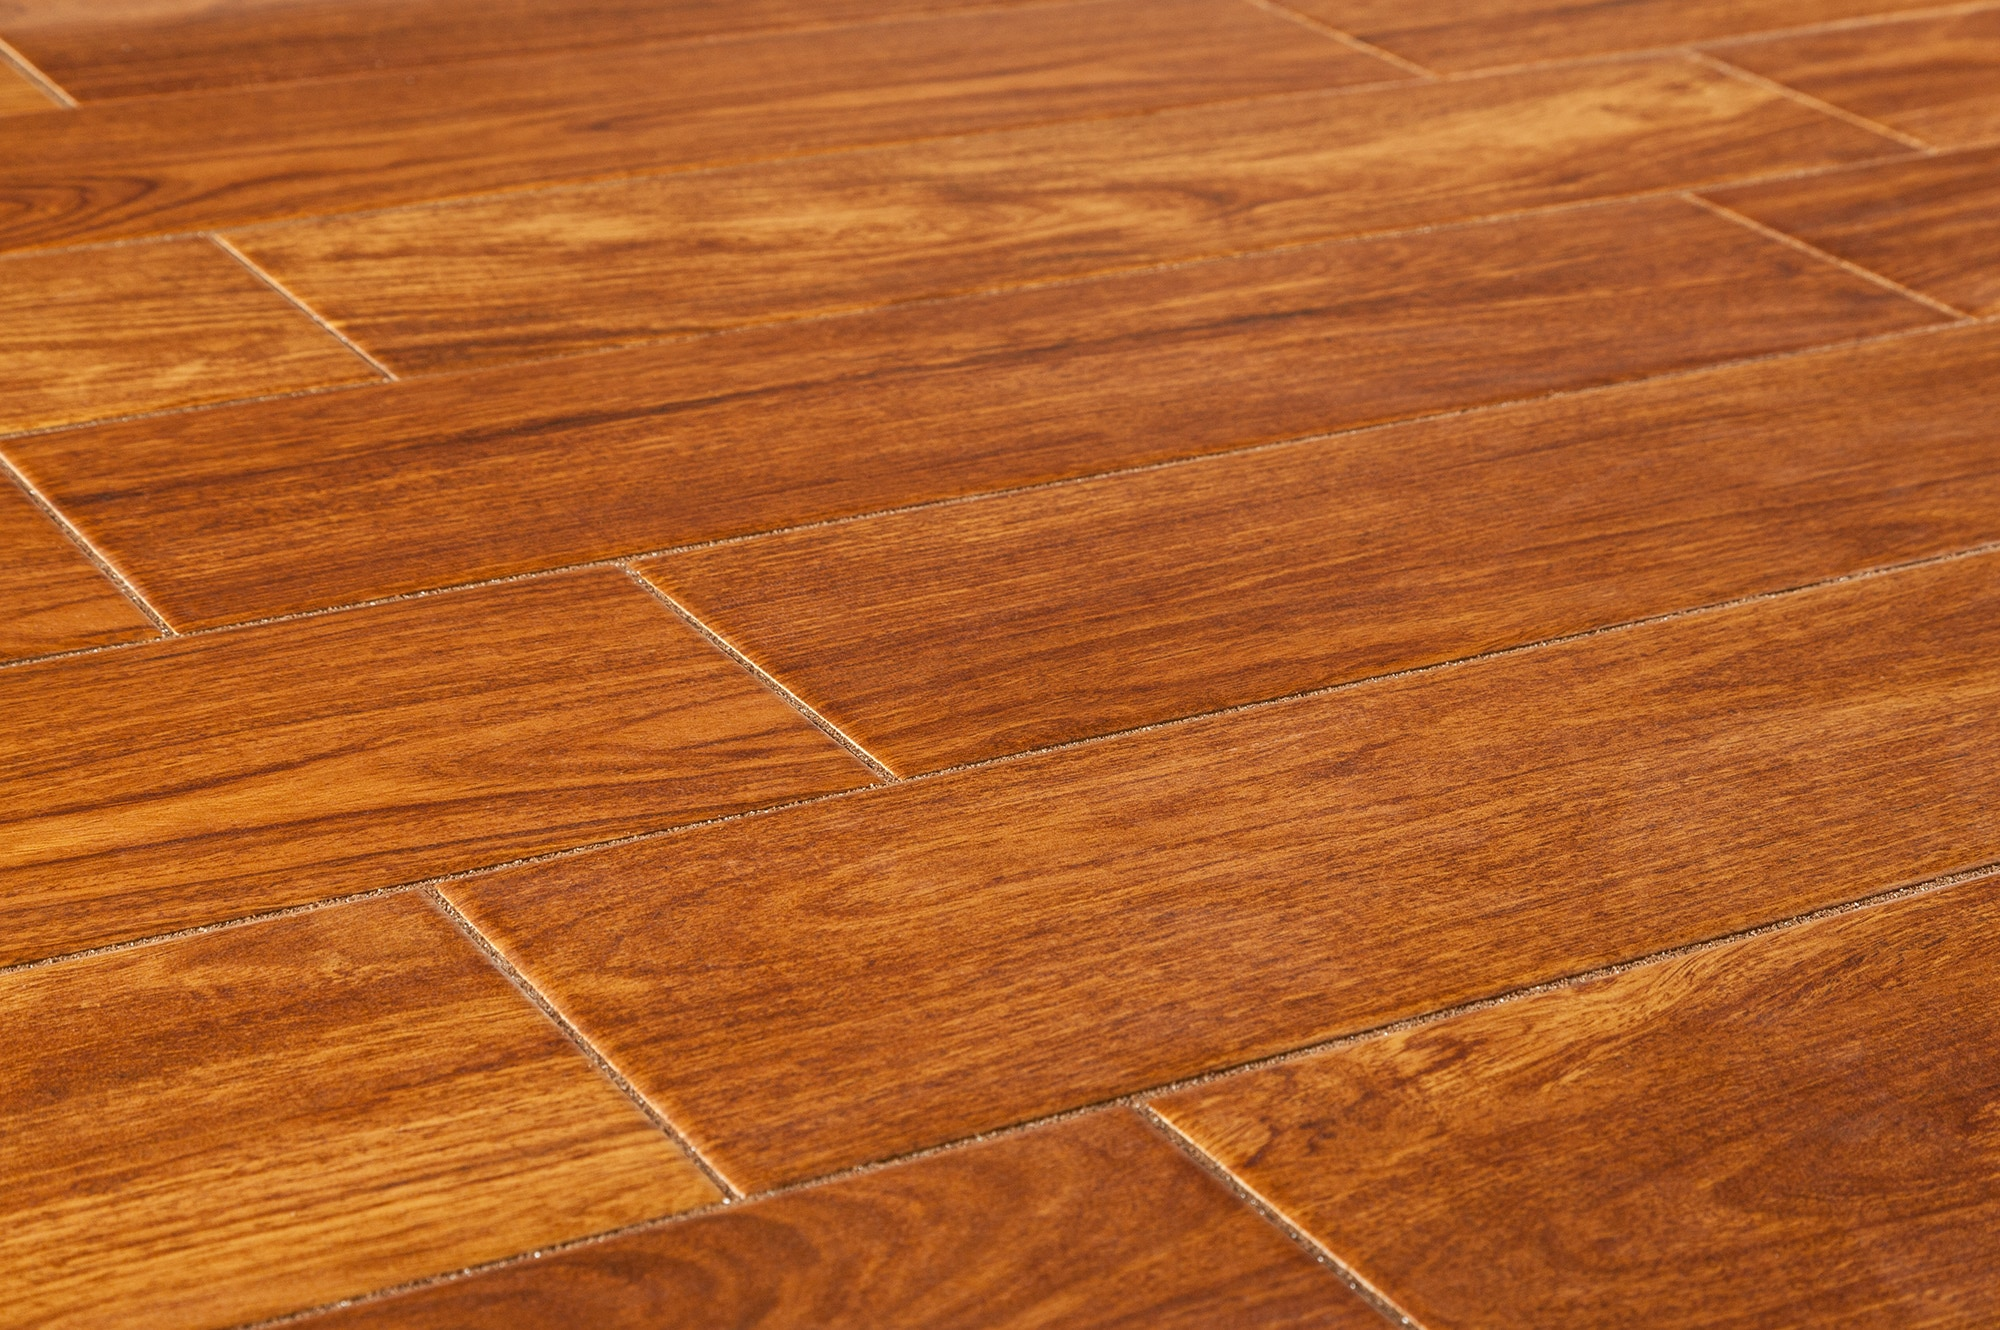 Salerno ceramic tile american wood series copper oak 6 x24 Ceramic tile that looks like wood flooring